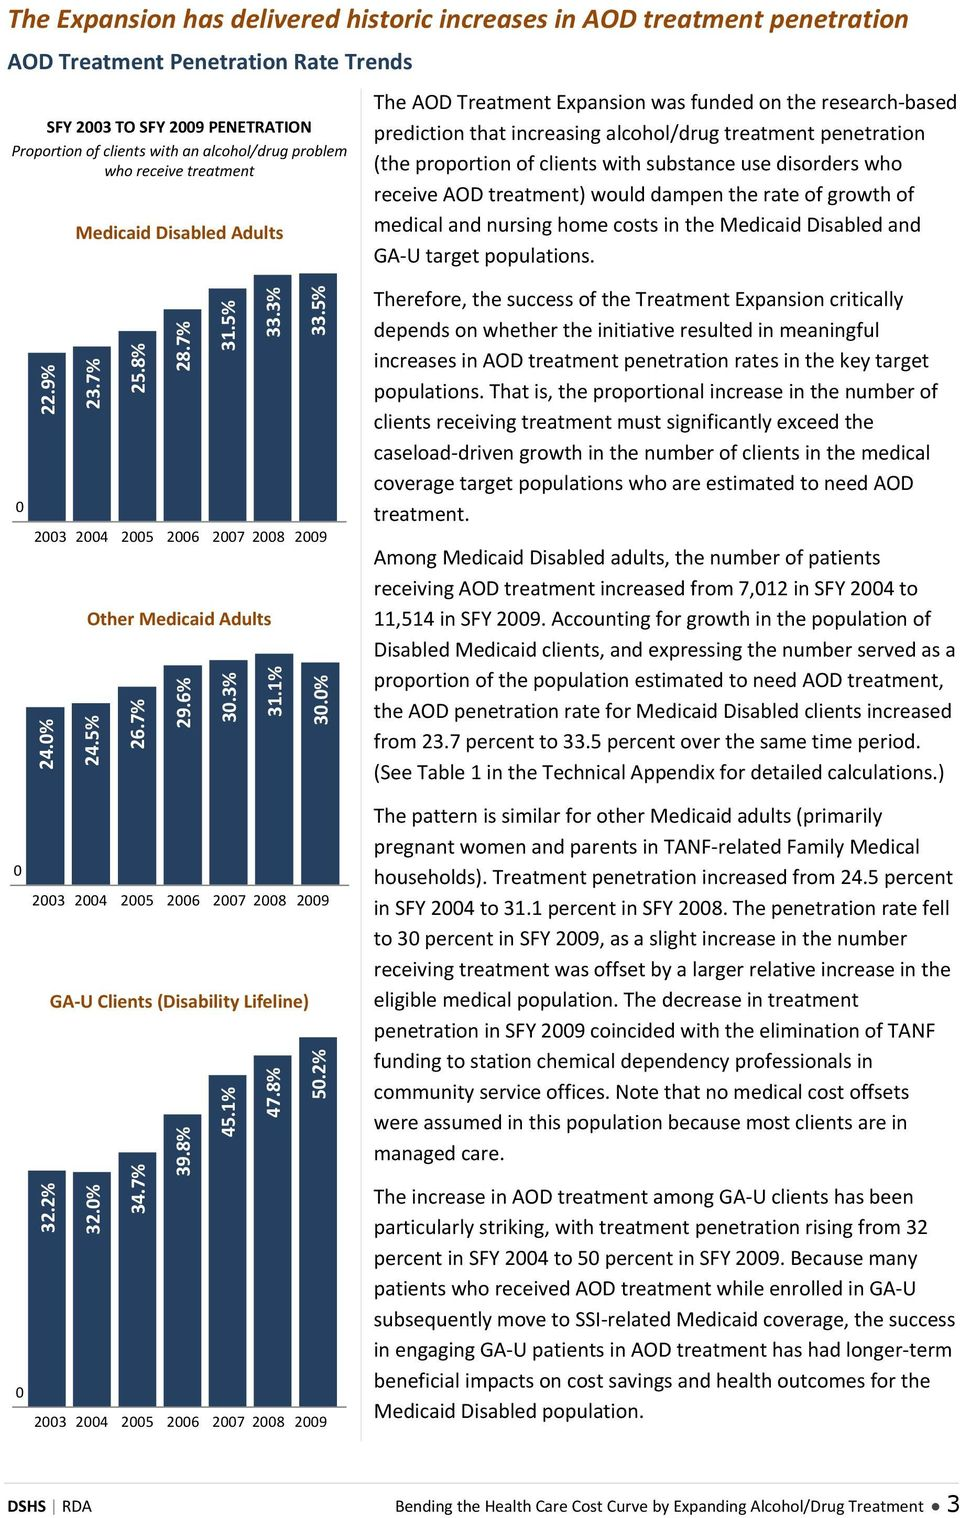 with substance use disorders who receive AOD treatment) would dampen the rate of growth of medical and nursing home costs in the Medicaid Disabled and GA U target populations. 22.9% 23.7% 25.8% 28.